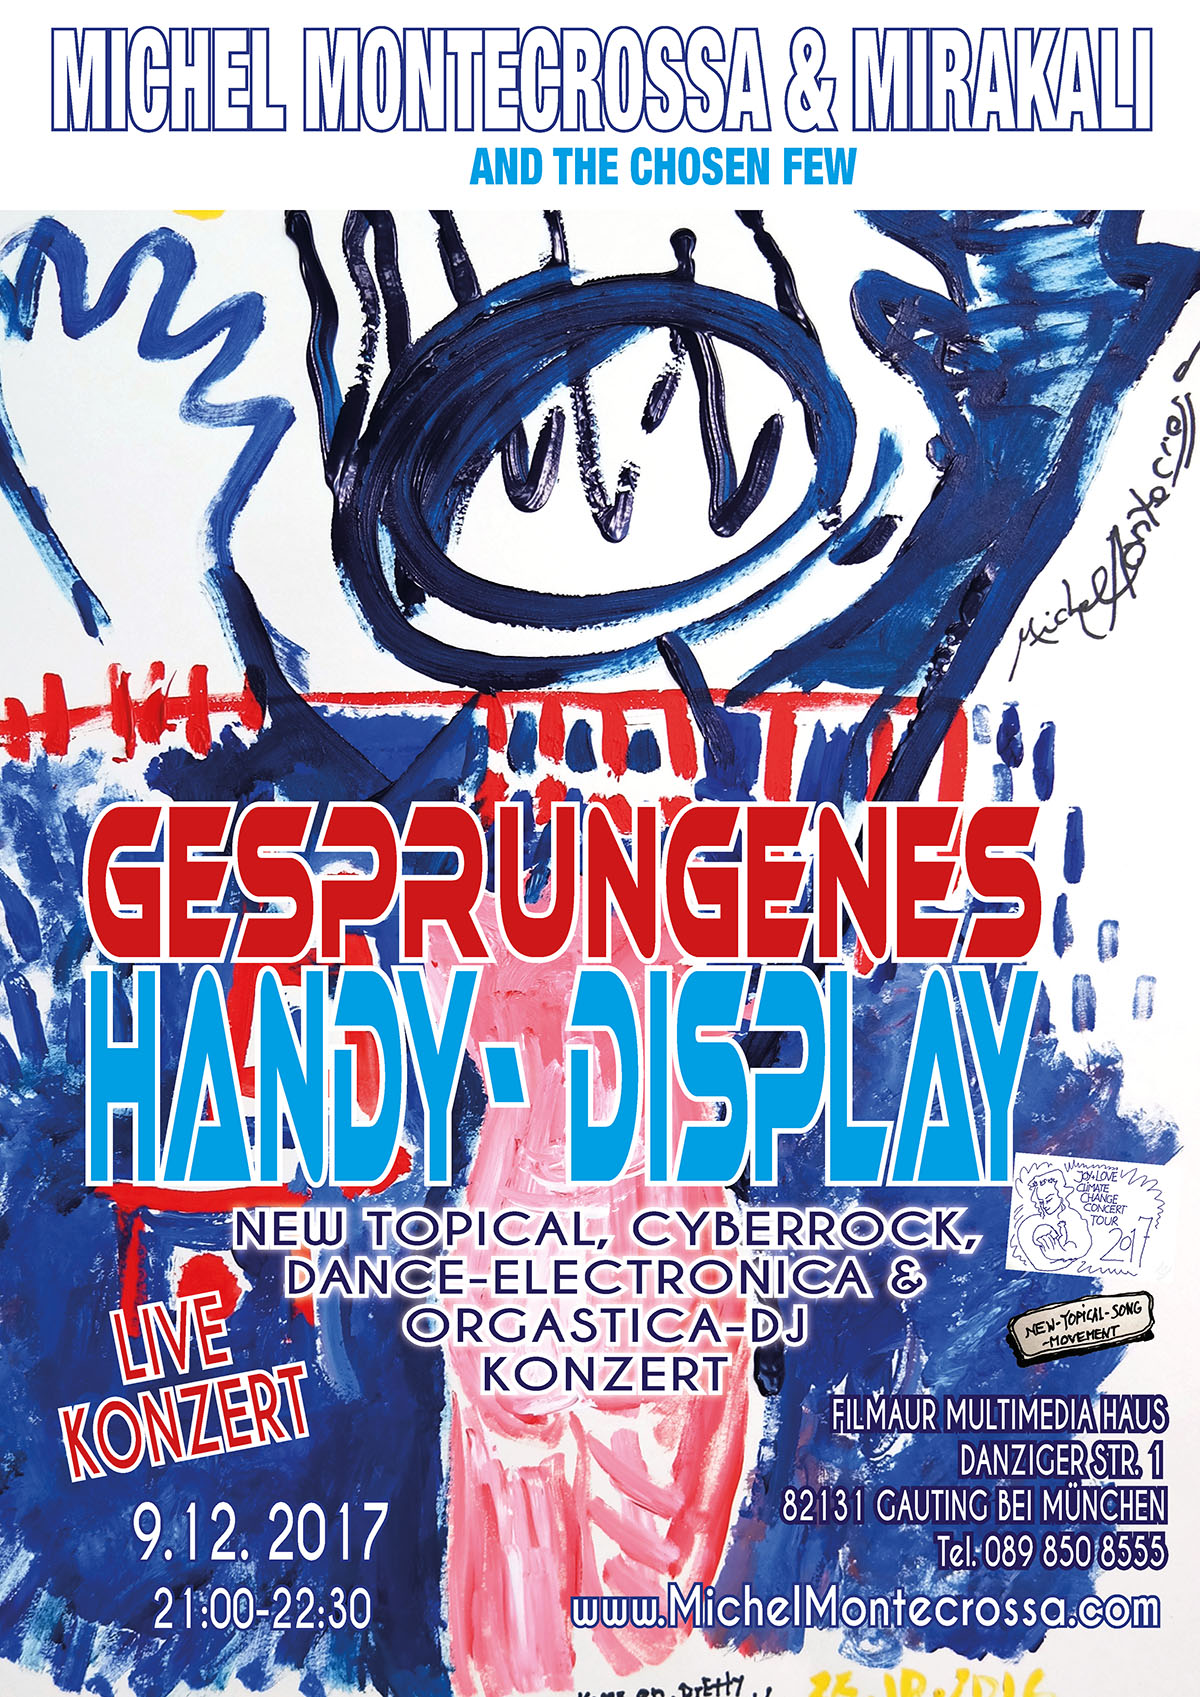 'Gesprungenes Handy-Display' New-Topical, Cyberrock, Dance-Electronica & Orgastica-DJ Konzert mit Michel Montecrossa und Mirakali (Filmaur Multimedia Haus; Gauting) am 9-12-2017